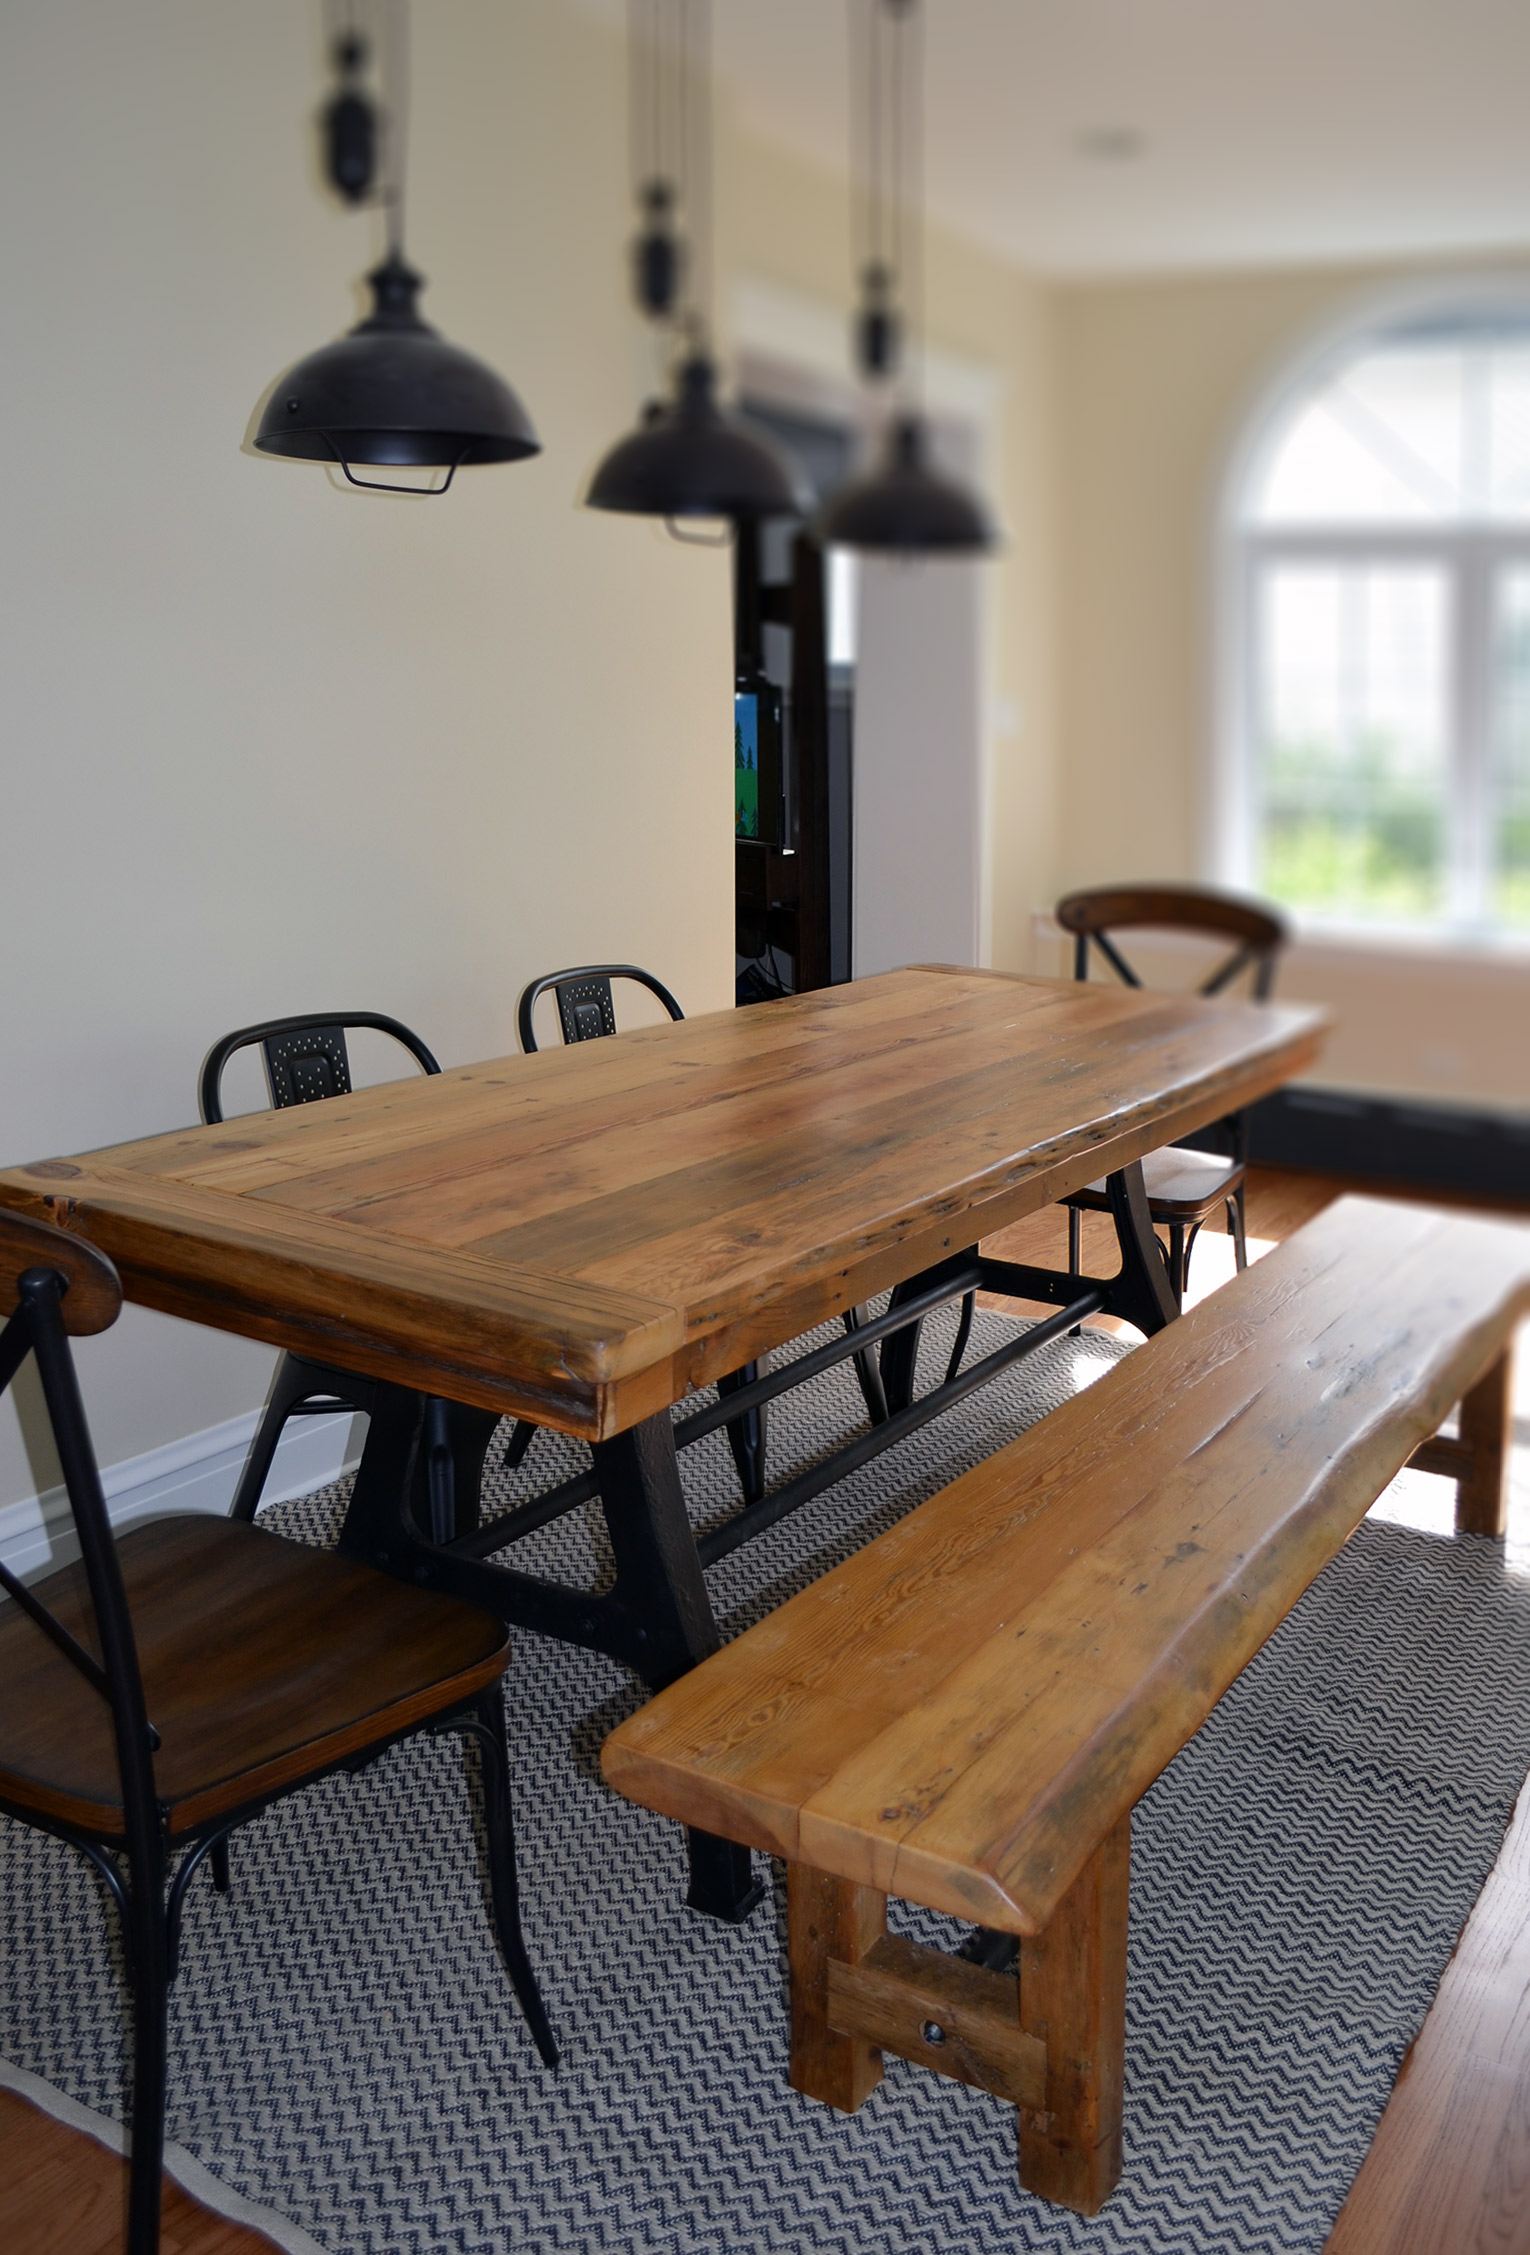 Cool Industrial Wishbone Leg Table And Bench Abodeacious Home Interior And Landscaping Eliaenasavecom